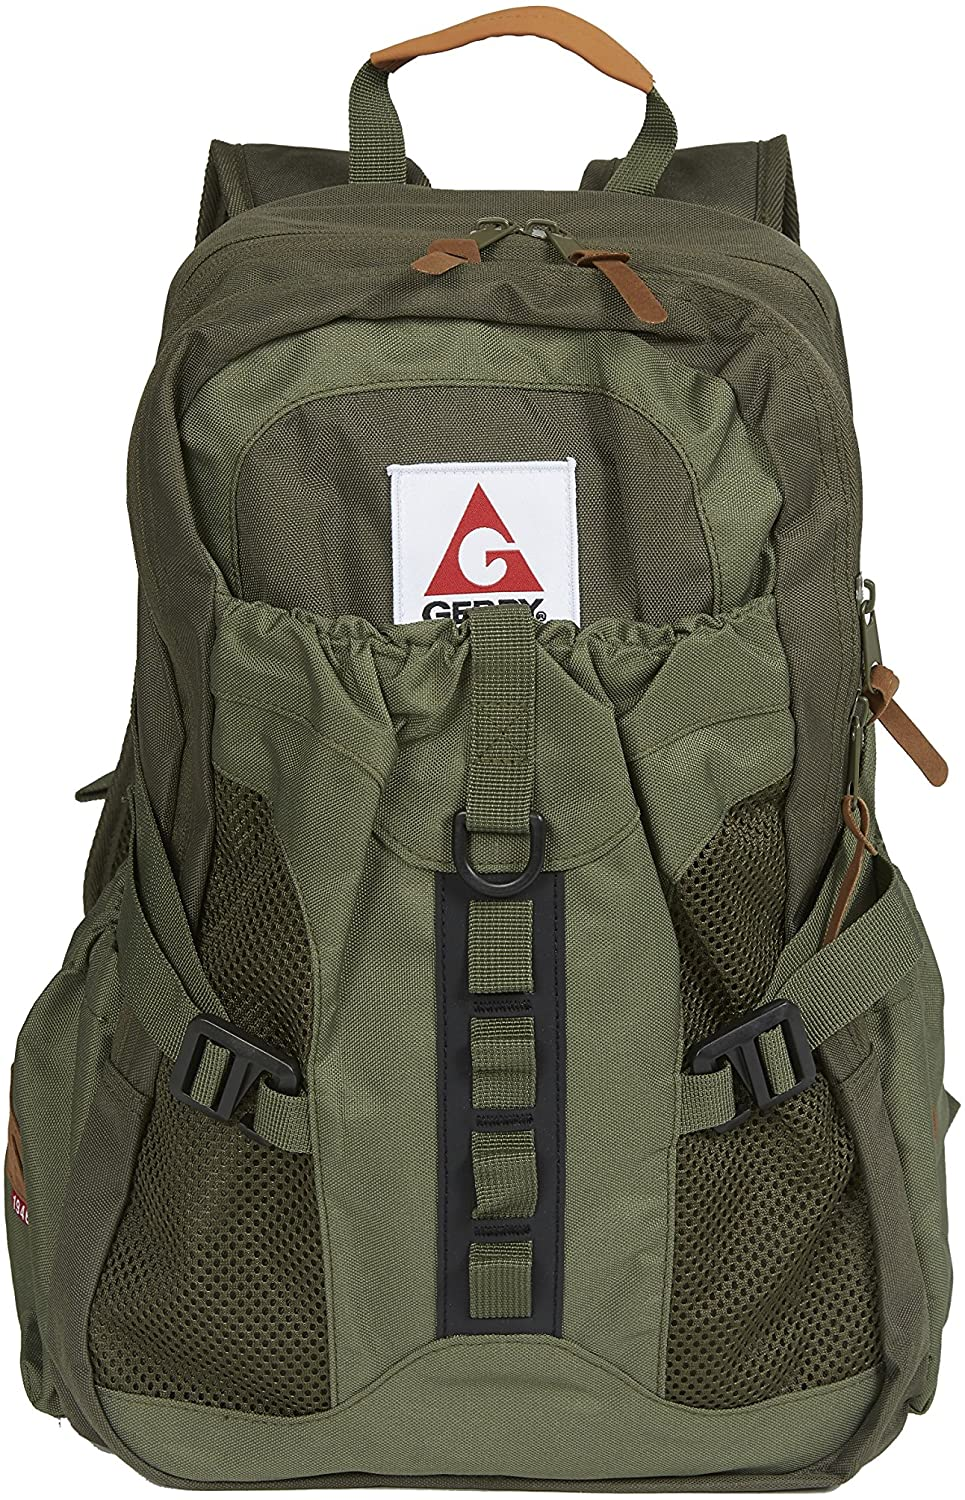 Gerry Outdoors - Thornton Zip Top Multi Compartment Backpack, Olive